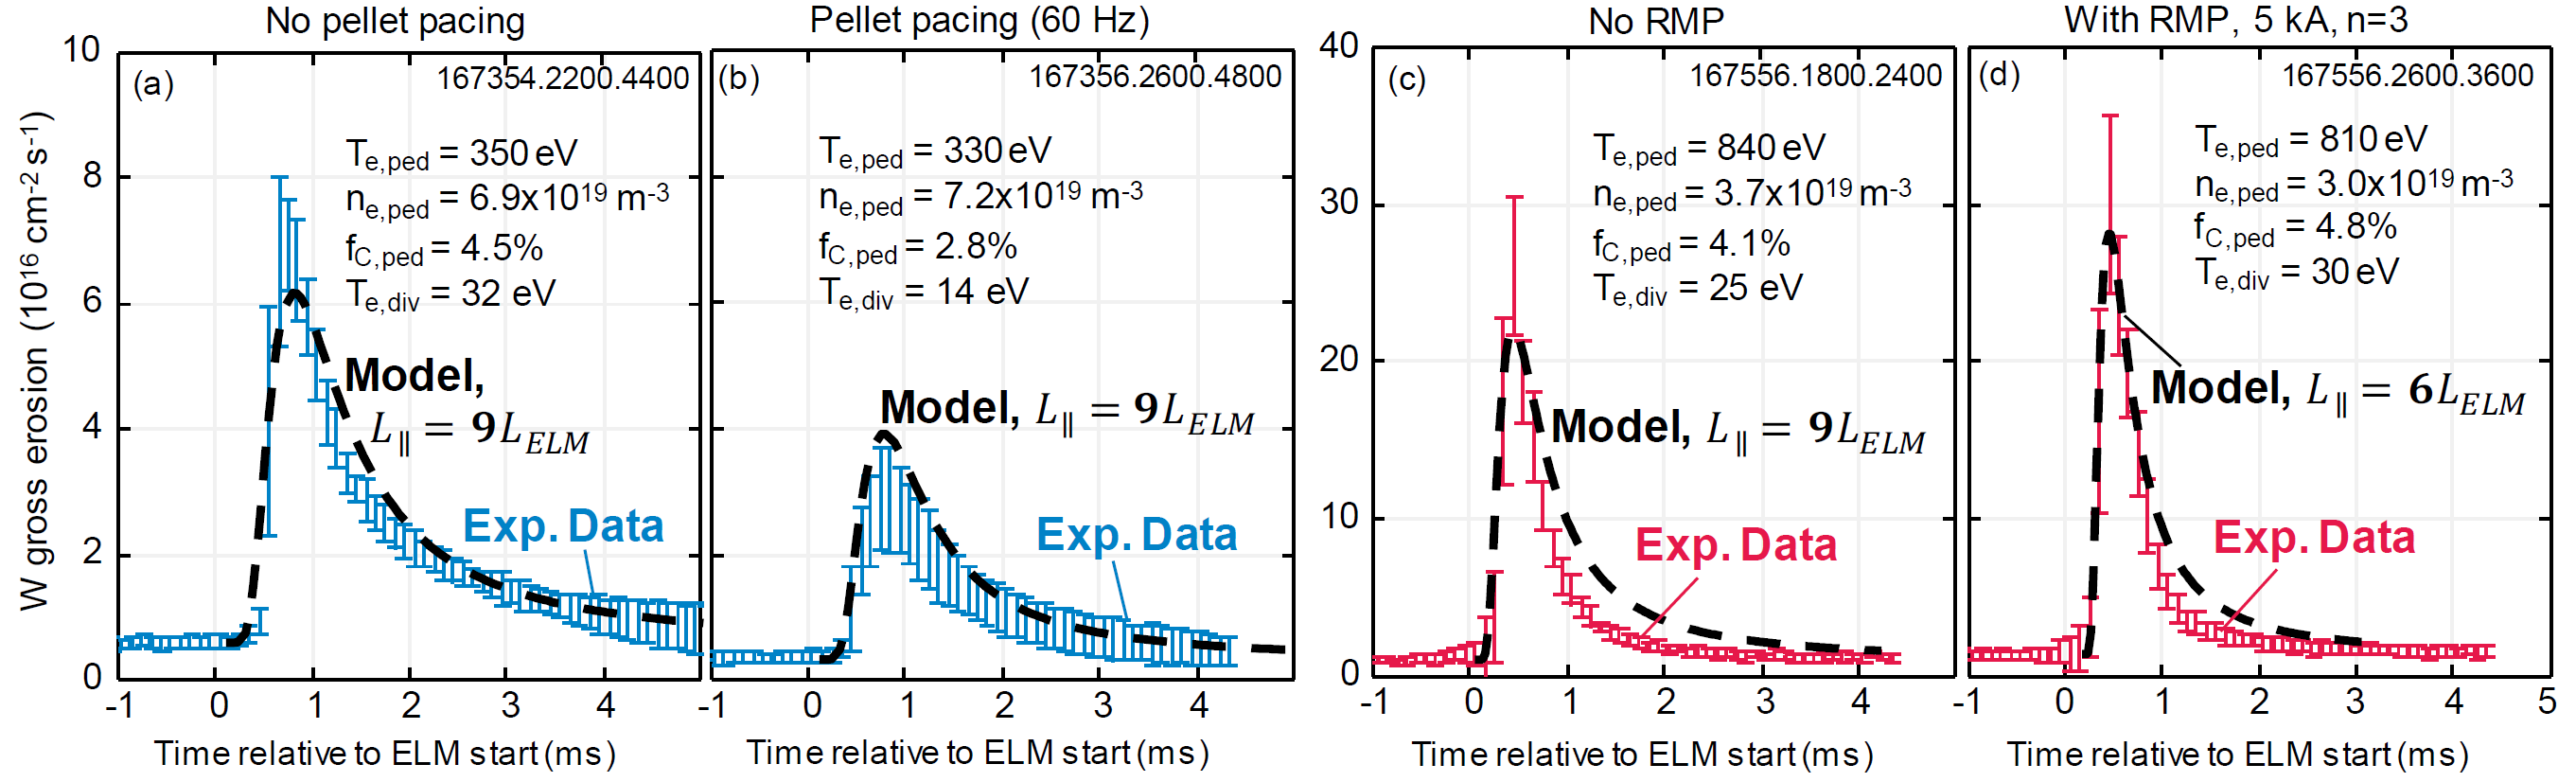 Measurements of tungsten gross erosion compared to the FSRM before (a) and after (b) pellet pacing is applied for ELM control; before (c) and after (d) resonant magnetic perturbations are applied for ELM control.